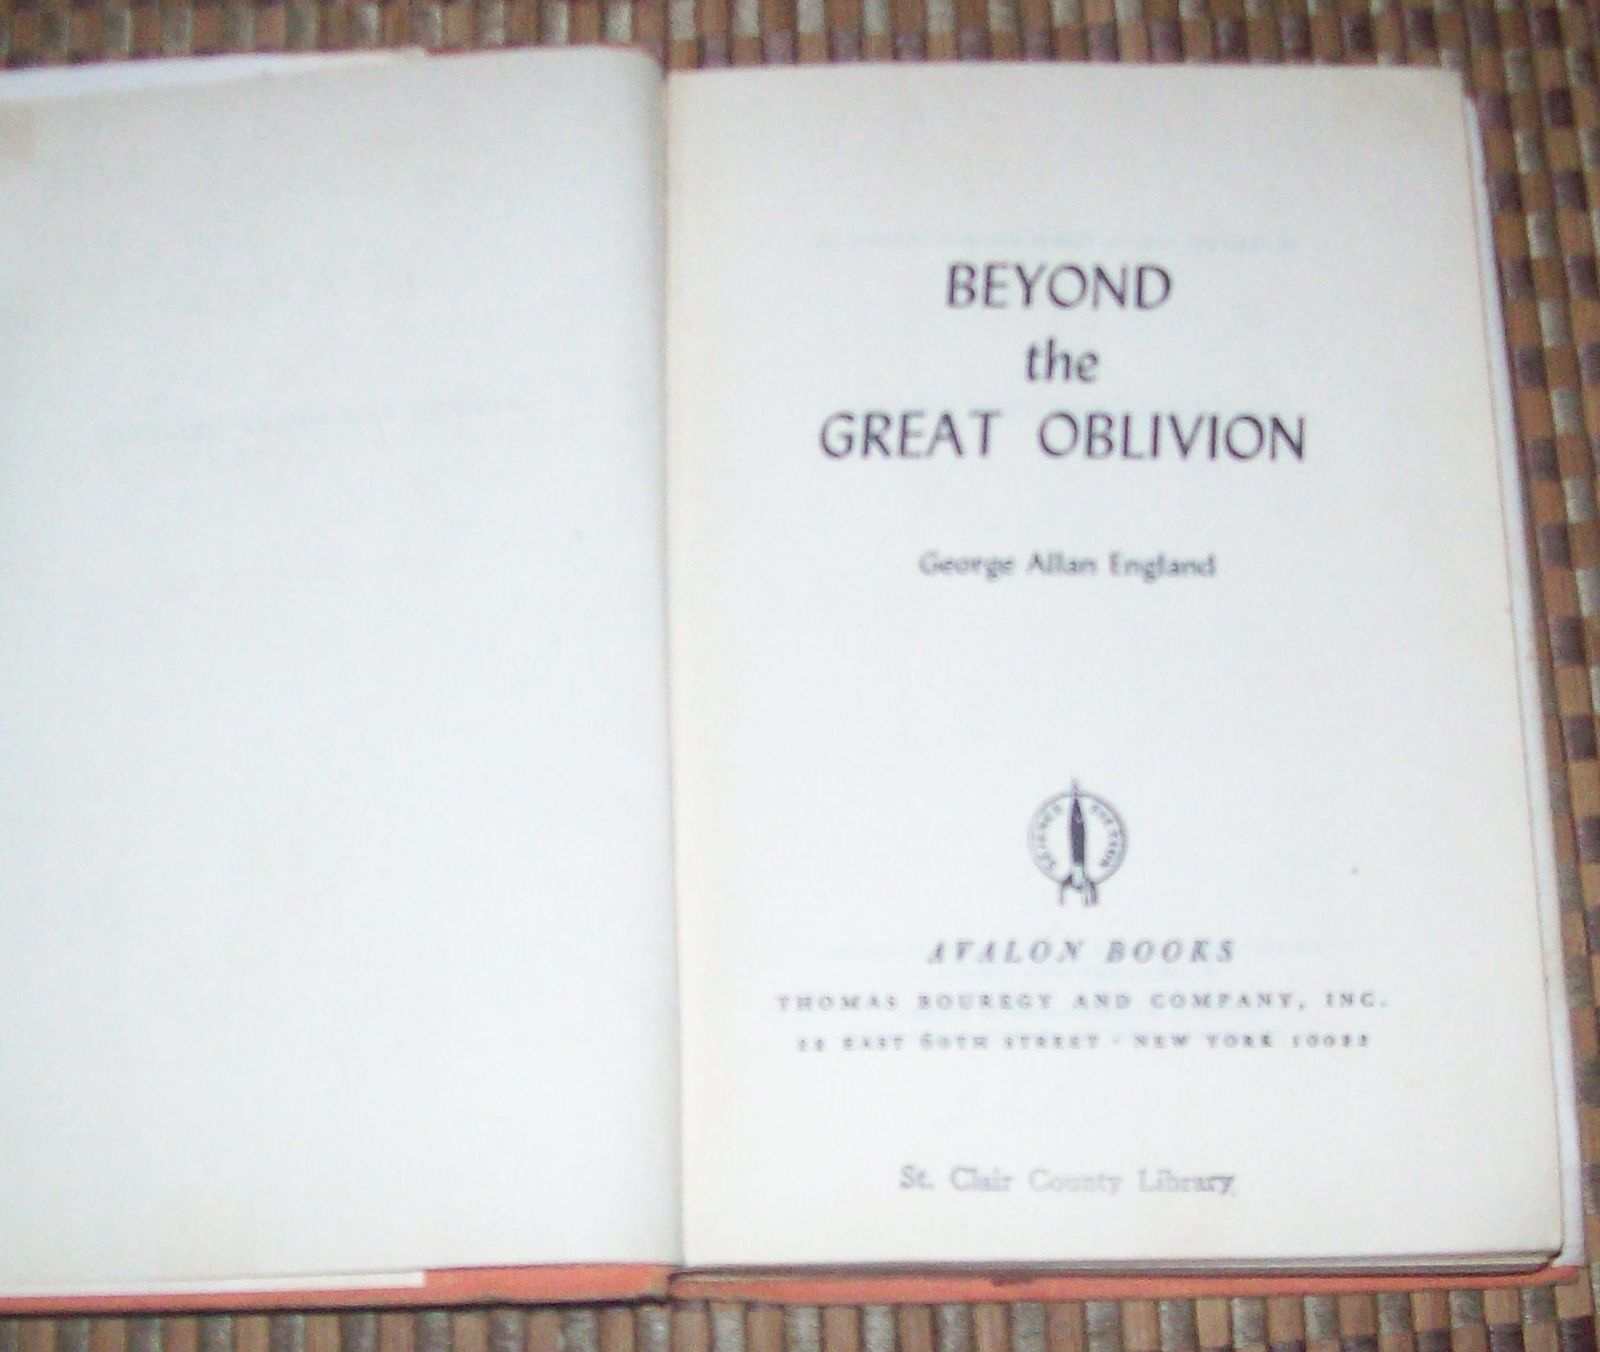 Beyond the Great Oblivion by George Allan England 1965 HBDJ